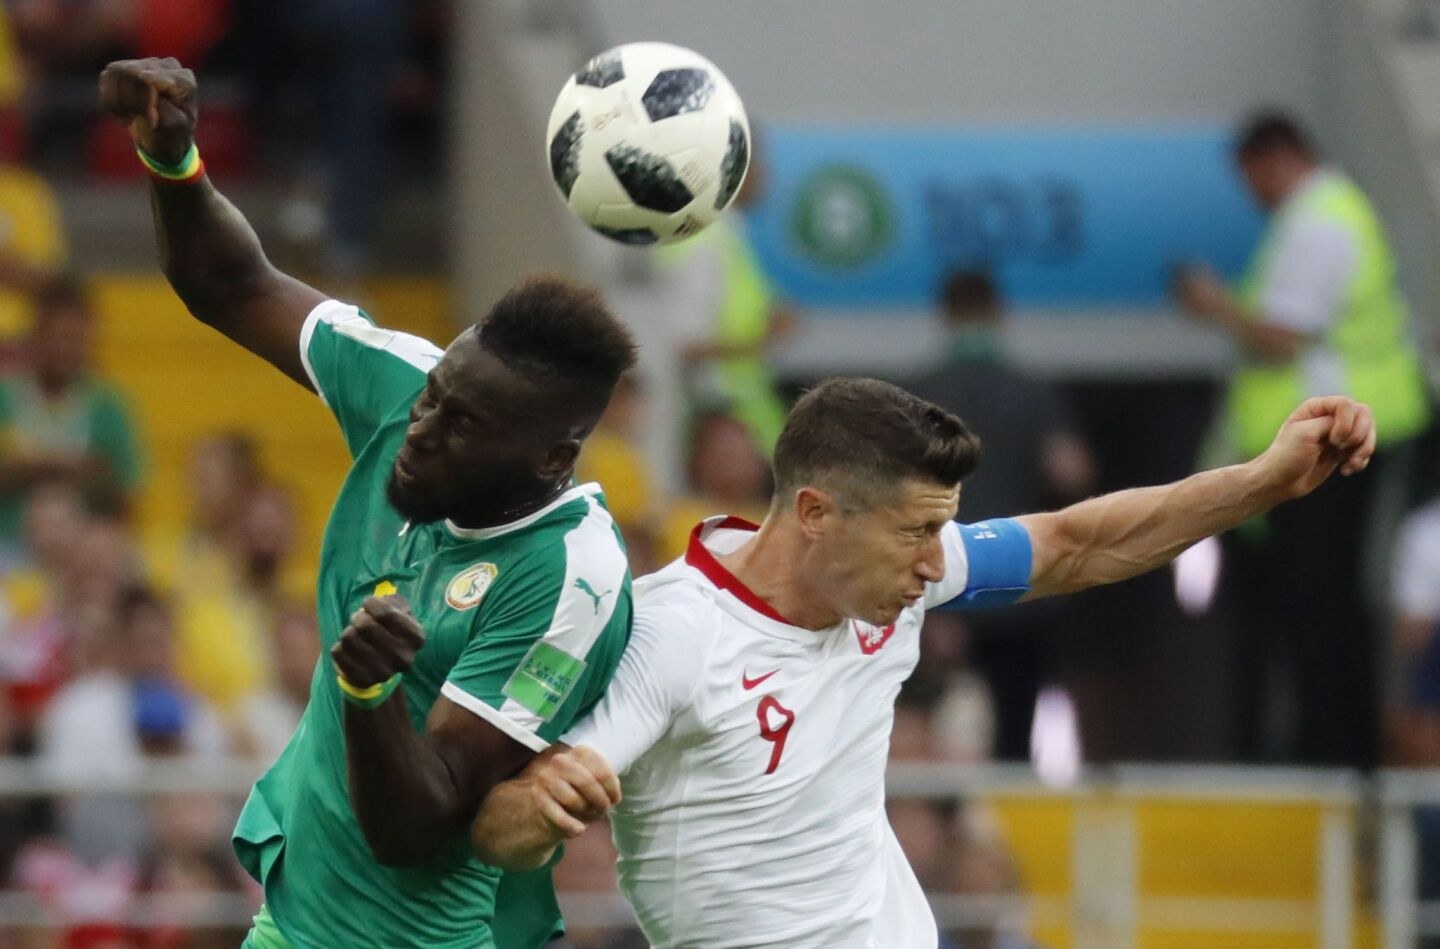 Moscow (Russian Federation), 19/06/2018.- Robert Lewandowski (R) of Poland and Salif Sane of Senegal in action during the FIFA World Cup 2018 group H preliminary round soccer match between Poland and Senegal in Moscow, Russia, 19 June 2018. (RESTRICTIONS APPLY: Editorial Use Only, not used in association with any commercial entity - Images must not be used in any form of alert service or push service of any kind including via mobile alert services, downloads to mobile devices or MMS messaging - Images must appear as still images and must not emulate match action video footage - No alteration is made to, and no text or image is superimposed over, any published image which: (a) intentionally obscures or removes a sponsor identification image; or (b) adds or overlays the commercial identification of any third party which is not officially associated with the FIFA World Cup) (Mundial de Fútbol, Polonia, Moscú, Rusia) EFE/EPA/FELIPE TRUEBA EDITORIAL USE ONLY ** Usable by HOY and SD Only **